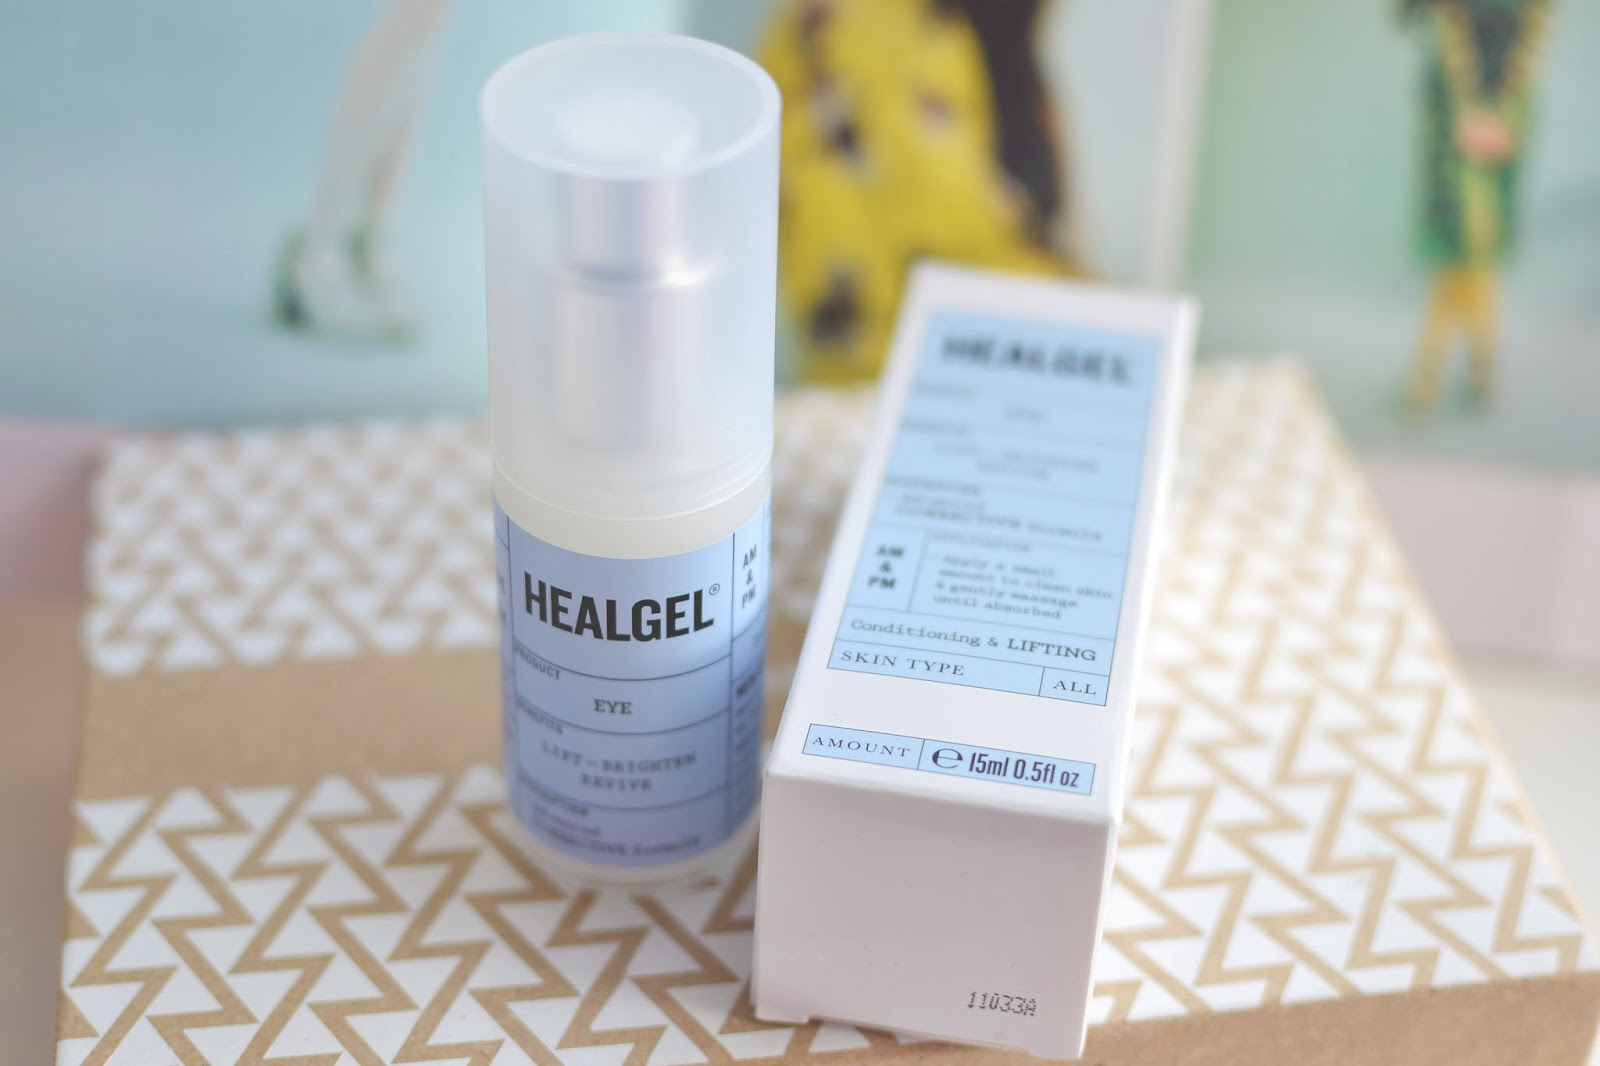 healgel eye review, best affordable eye cream